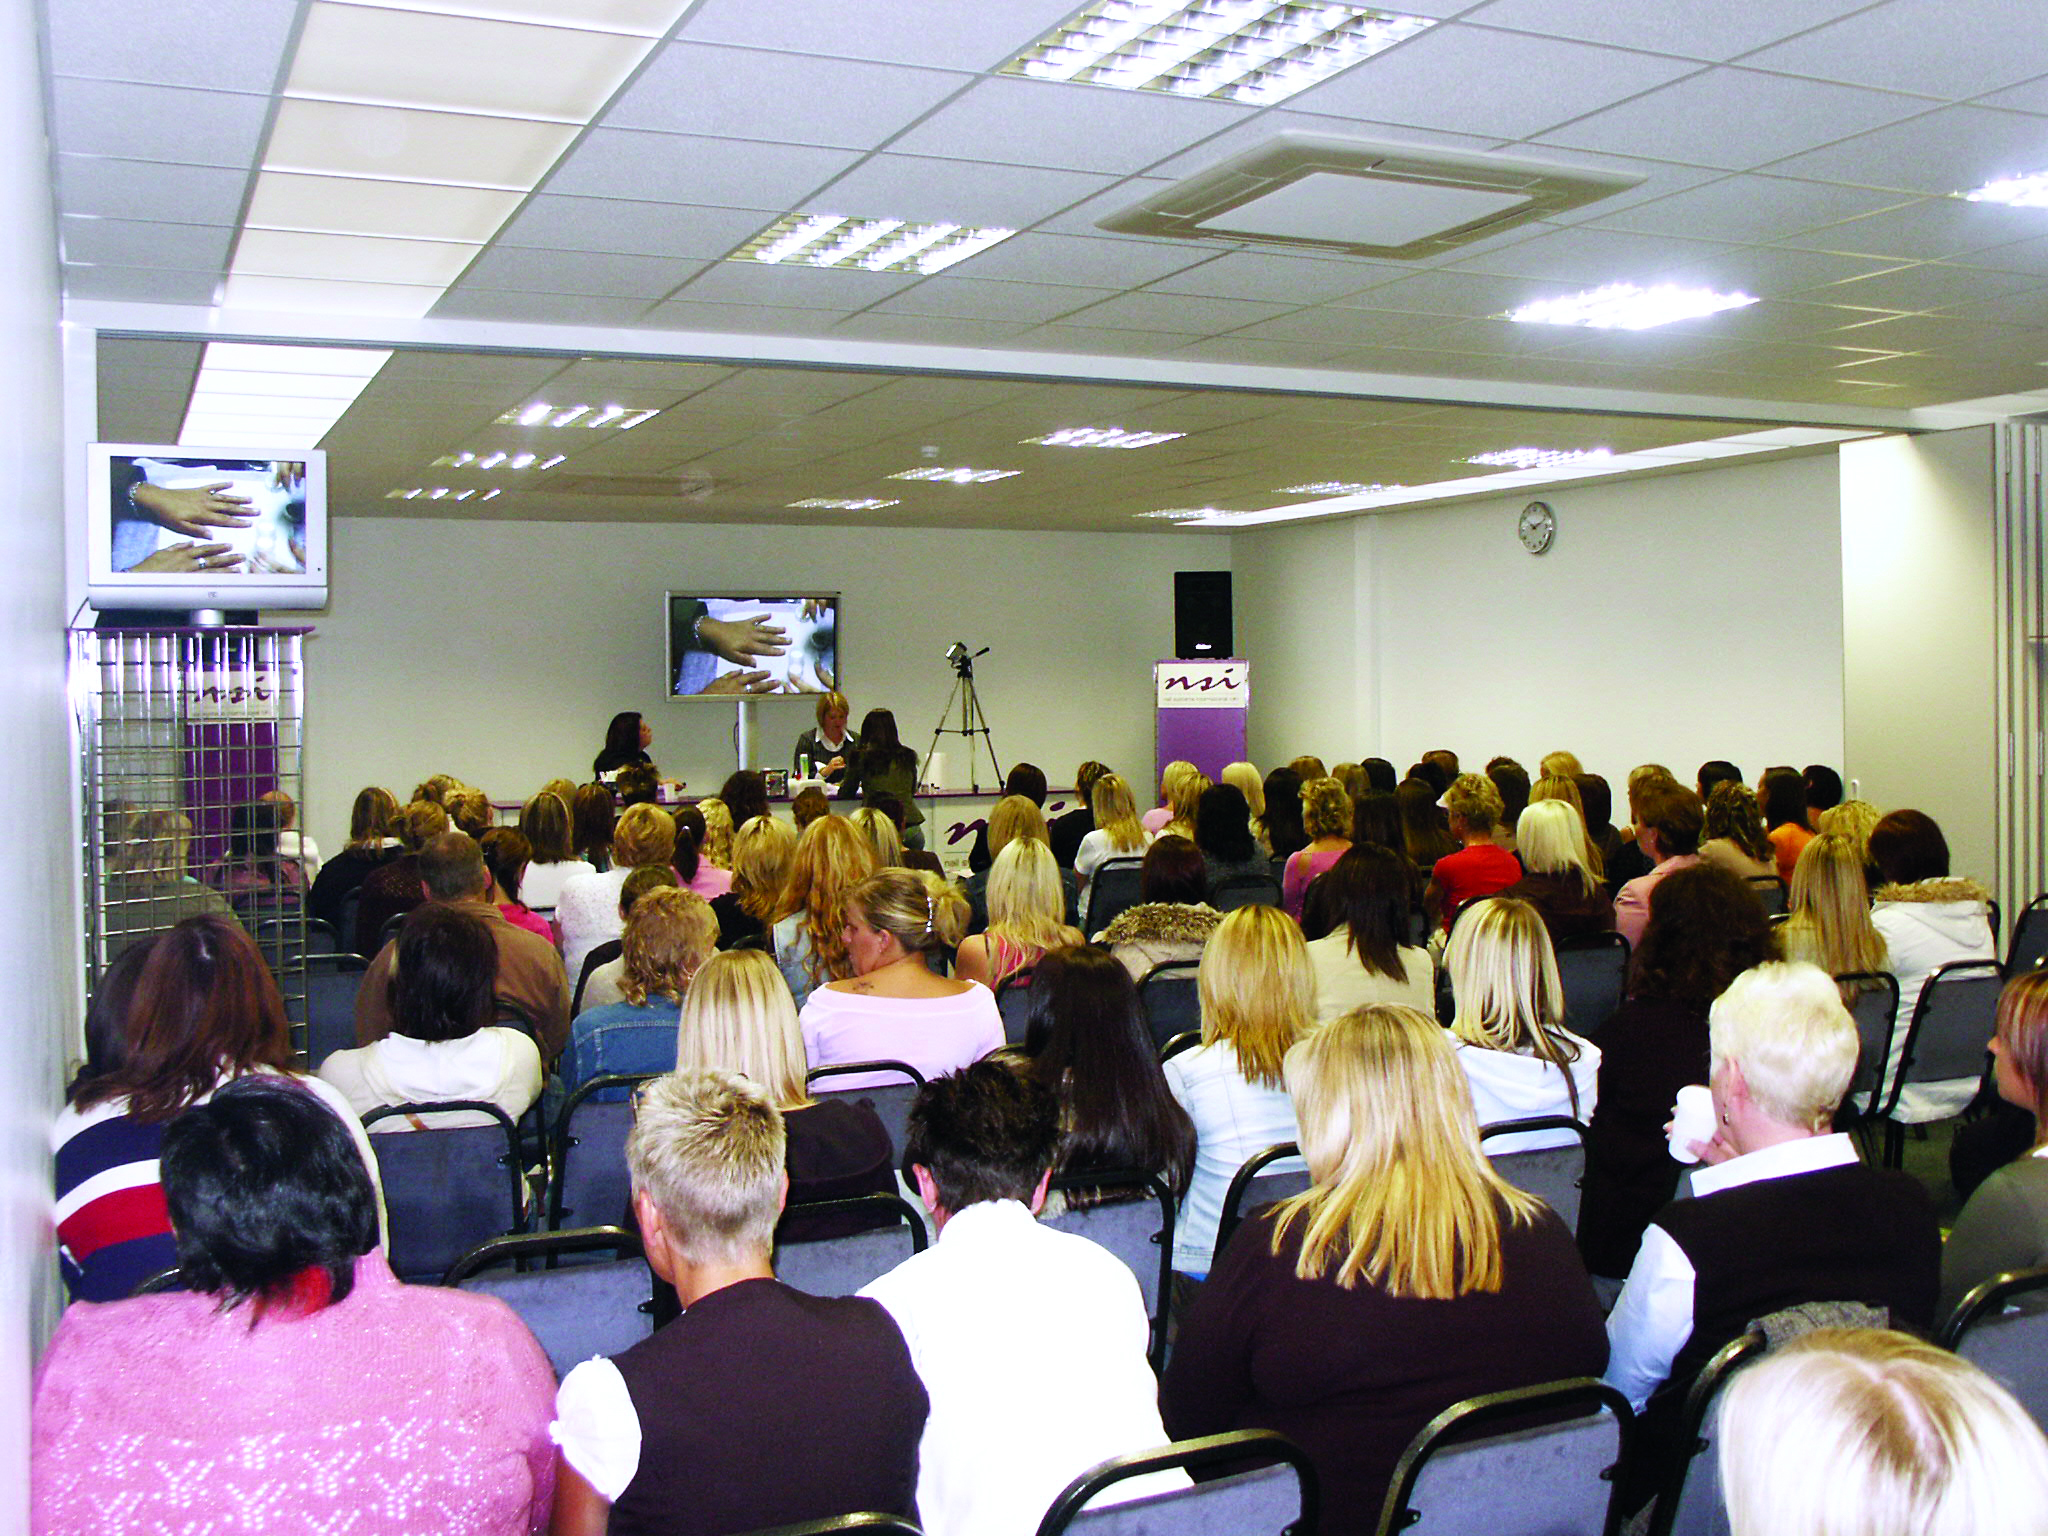 Nsi Has Been Supplying The Uk Nail And Beauty Industry For 25 Years Built Up A Retion Excellence Both Its S Training